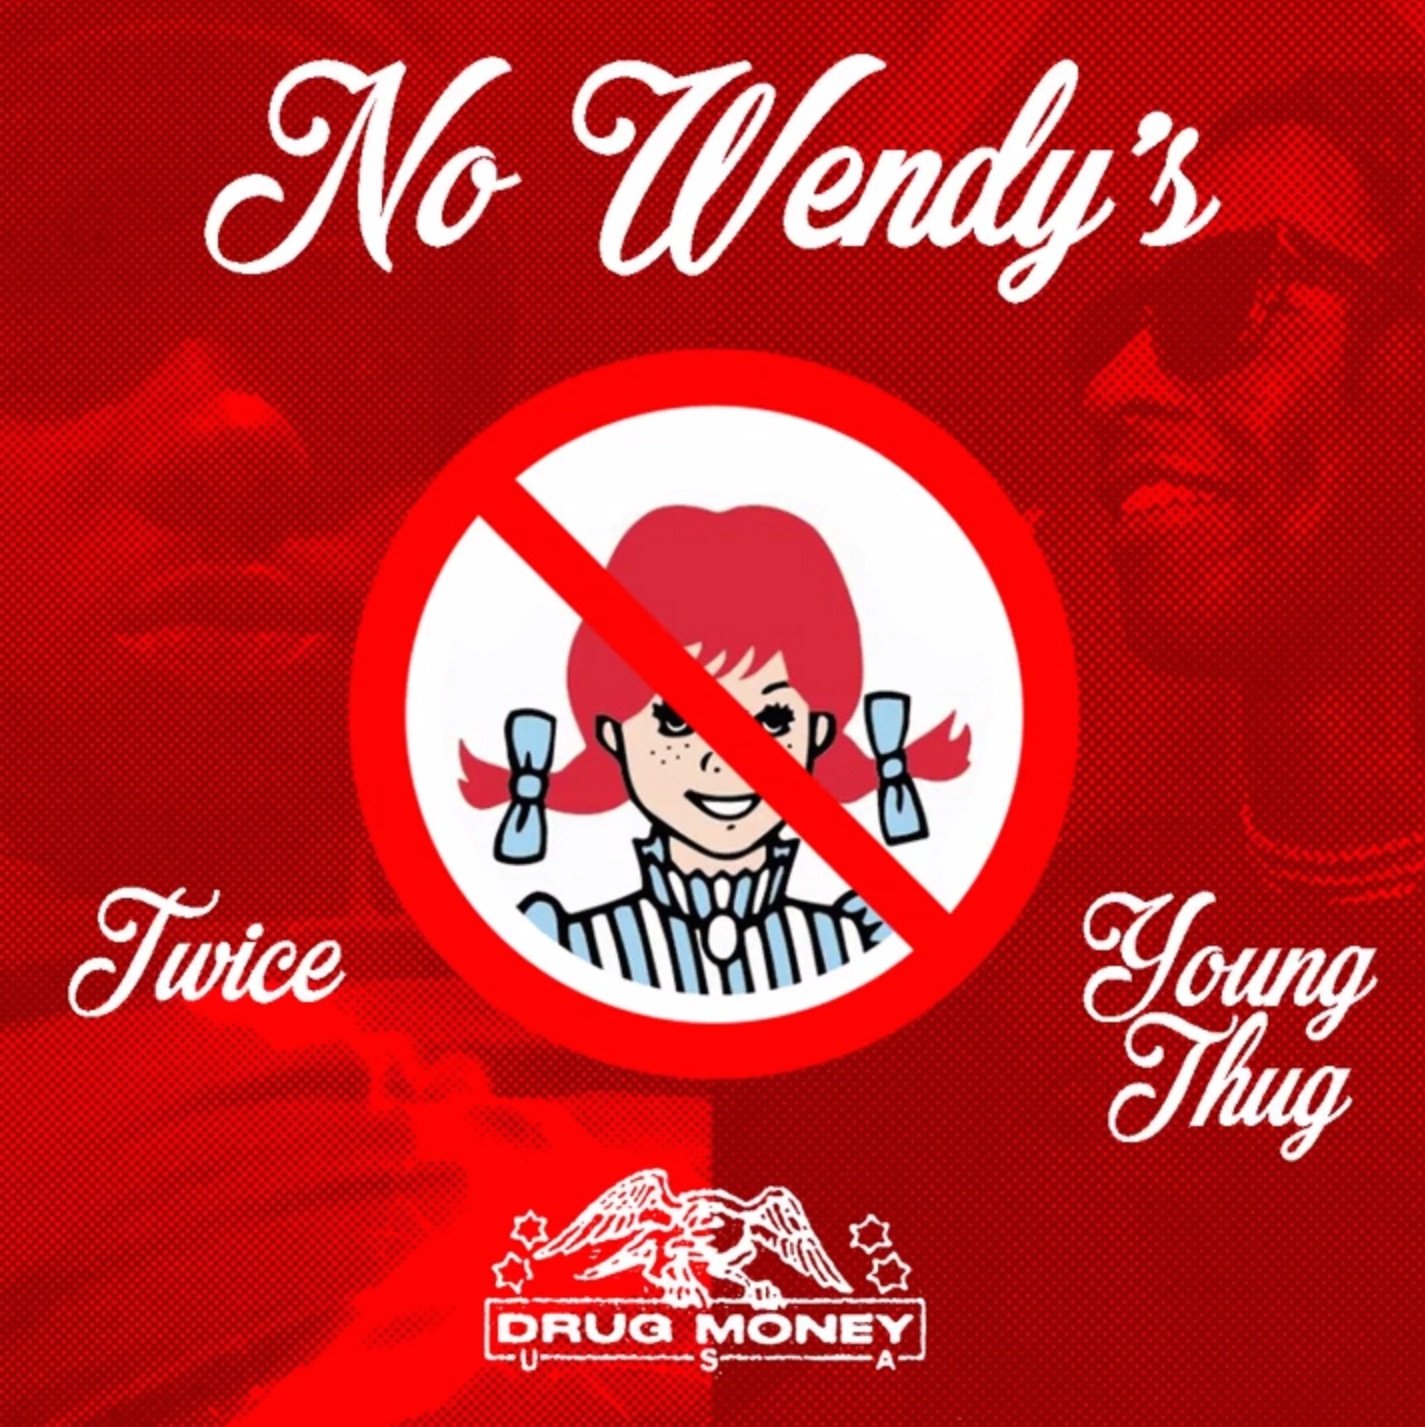 "Young Thug and Twice ""No Wendy's"" (Drake ""Controlla"" remix)"